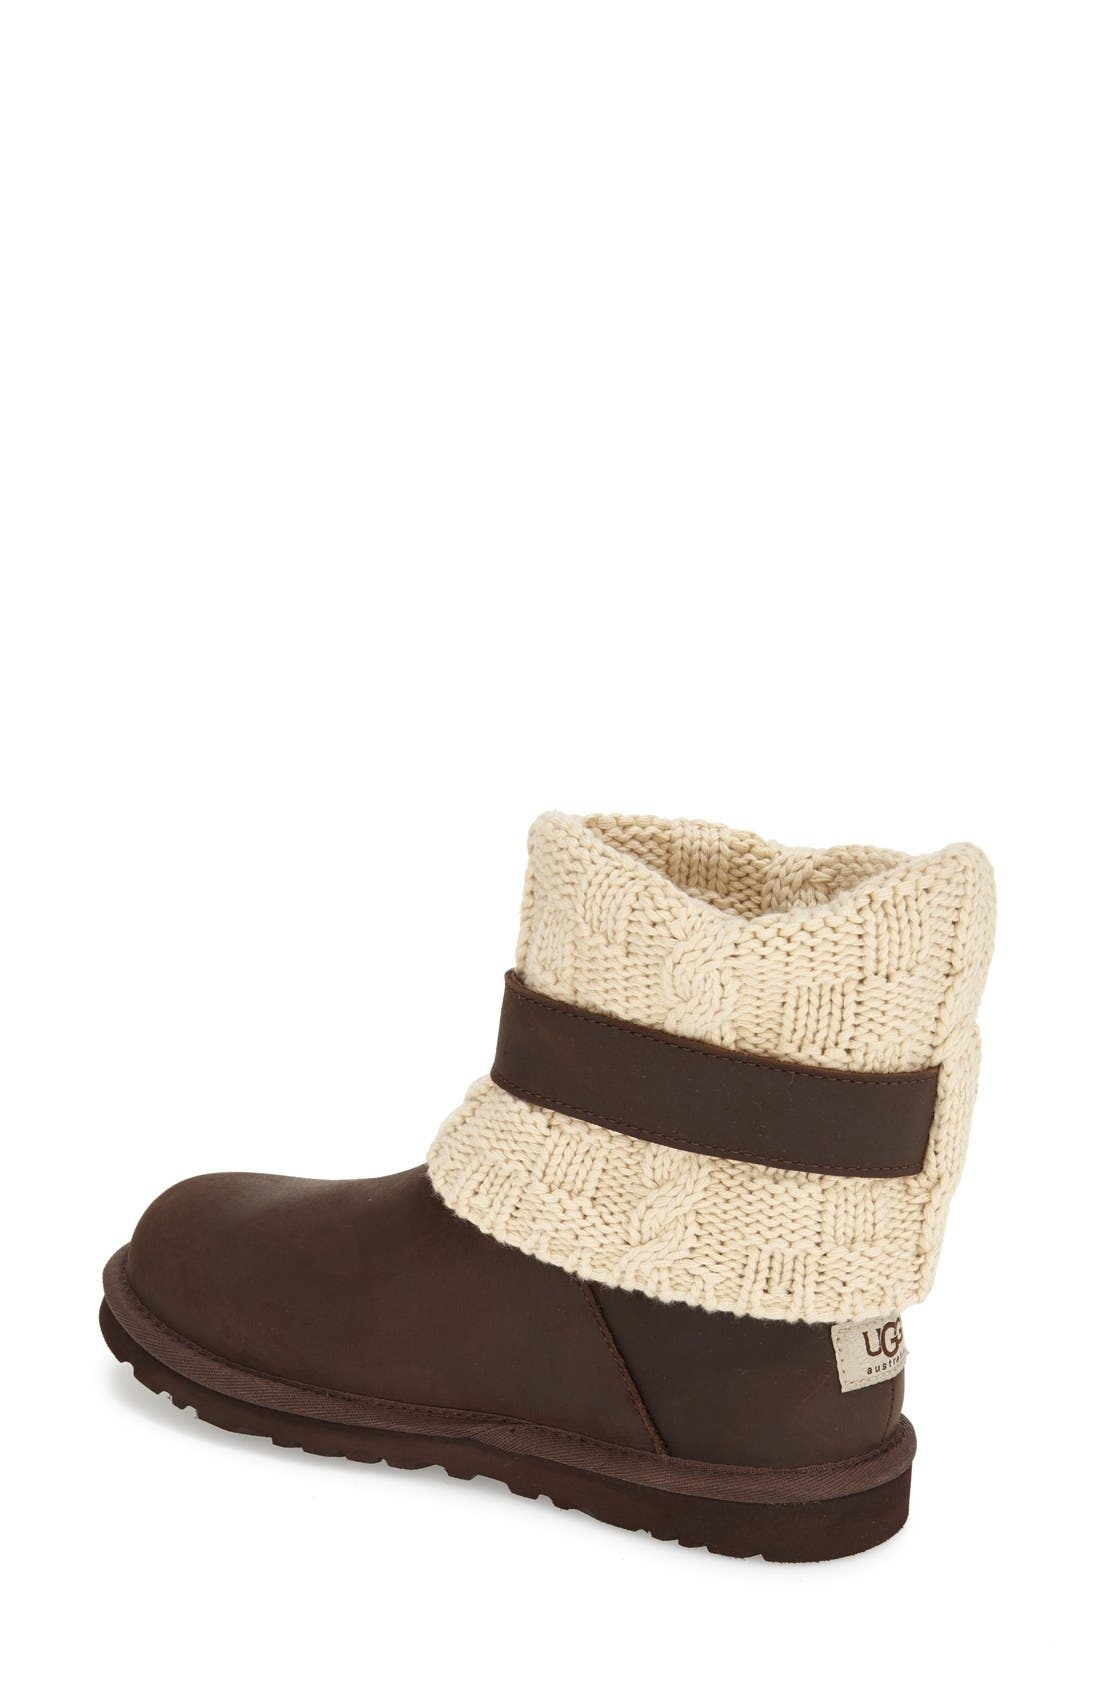 Alternate Image 2  - UGG® 'Cassidee' Cable Knit Boot (Women)